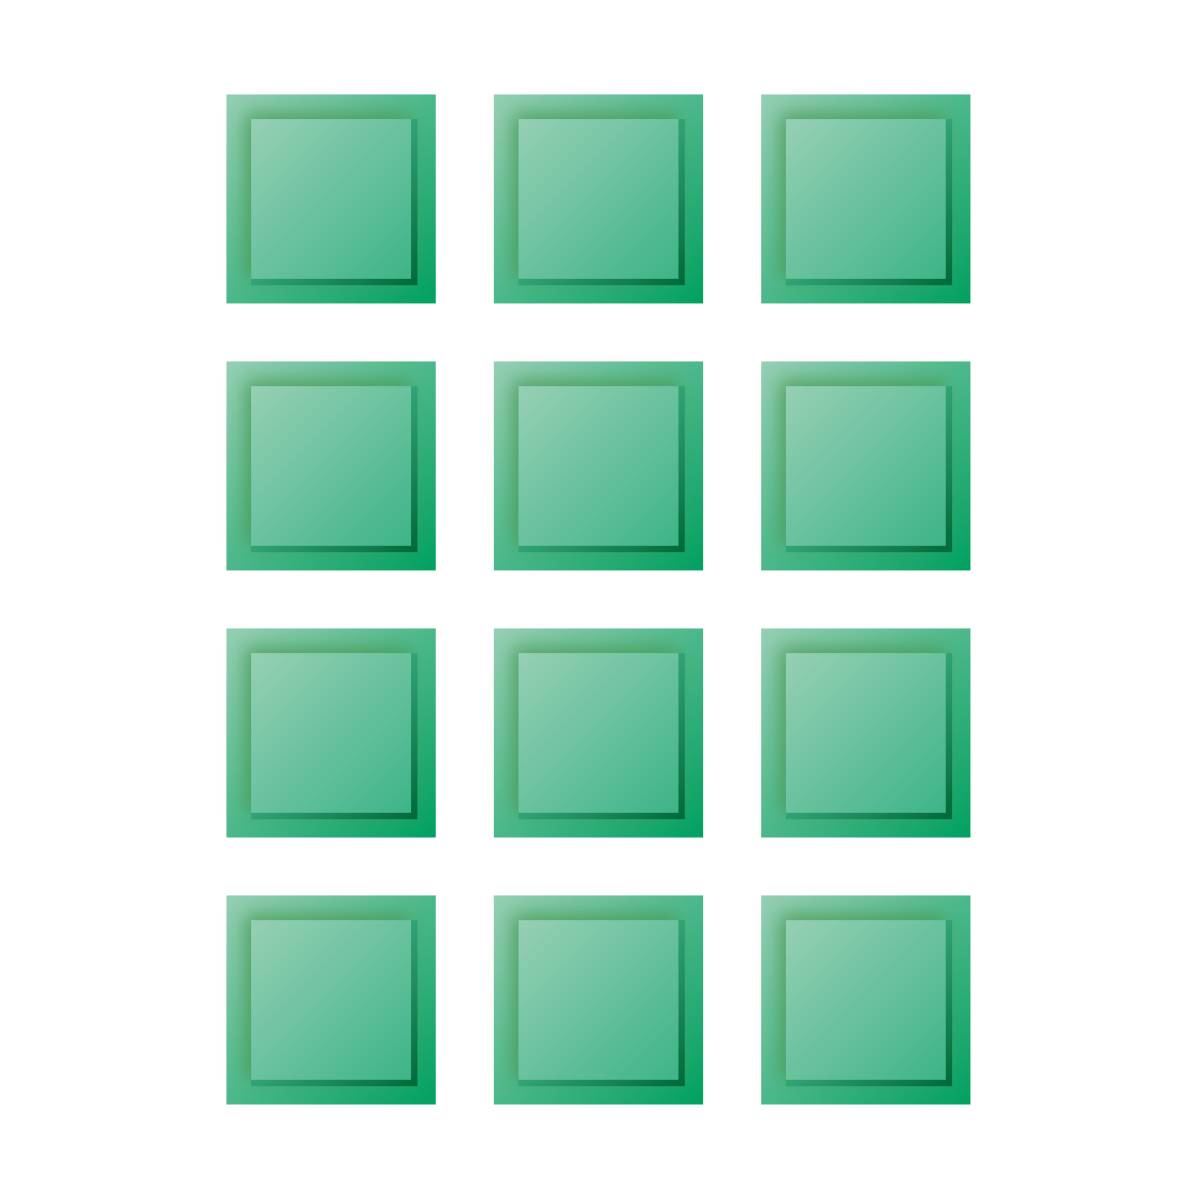 3×4 rectangle